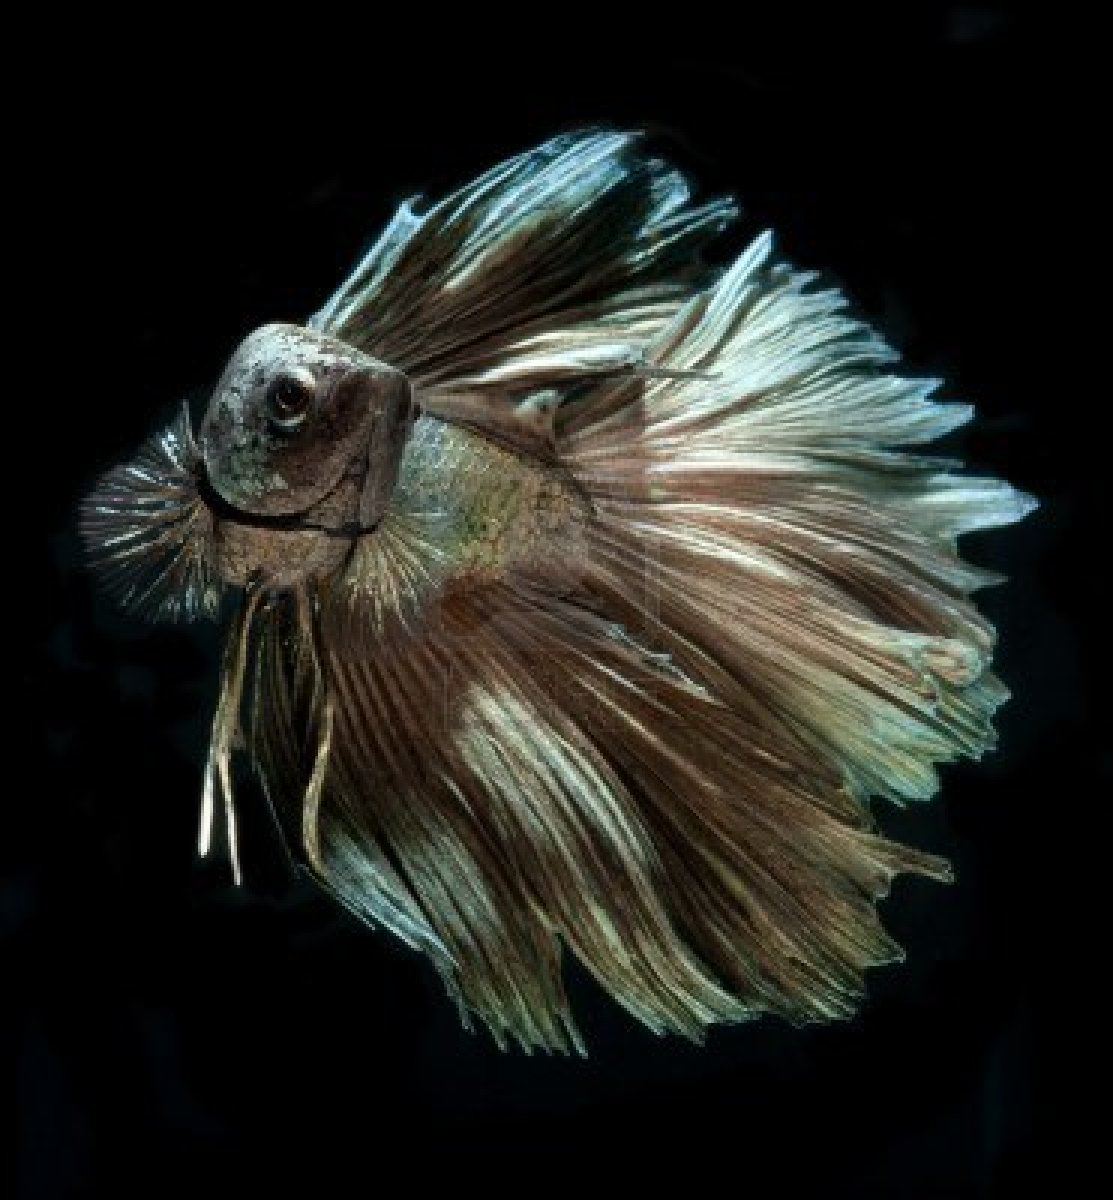 Betta fish images betta fish hd wallpaper and background for Beta fish water